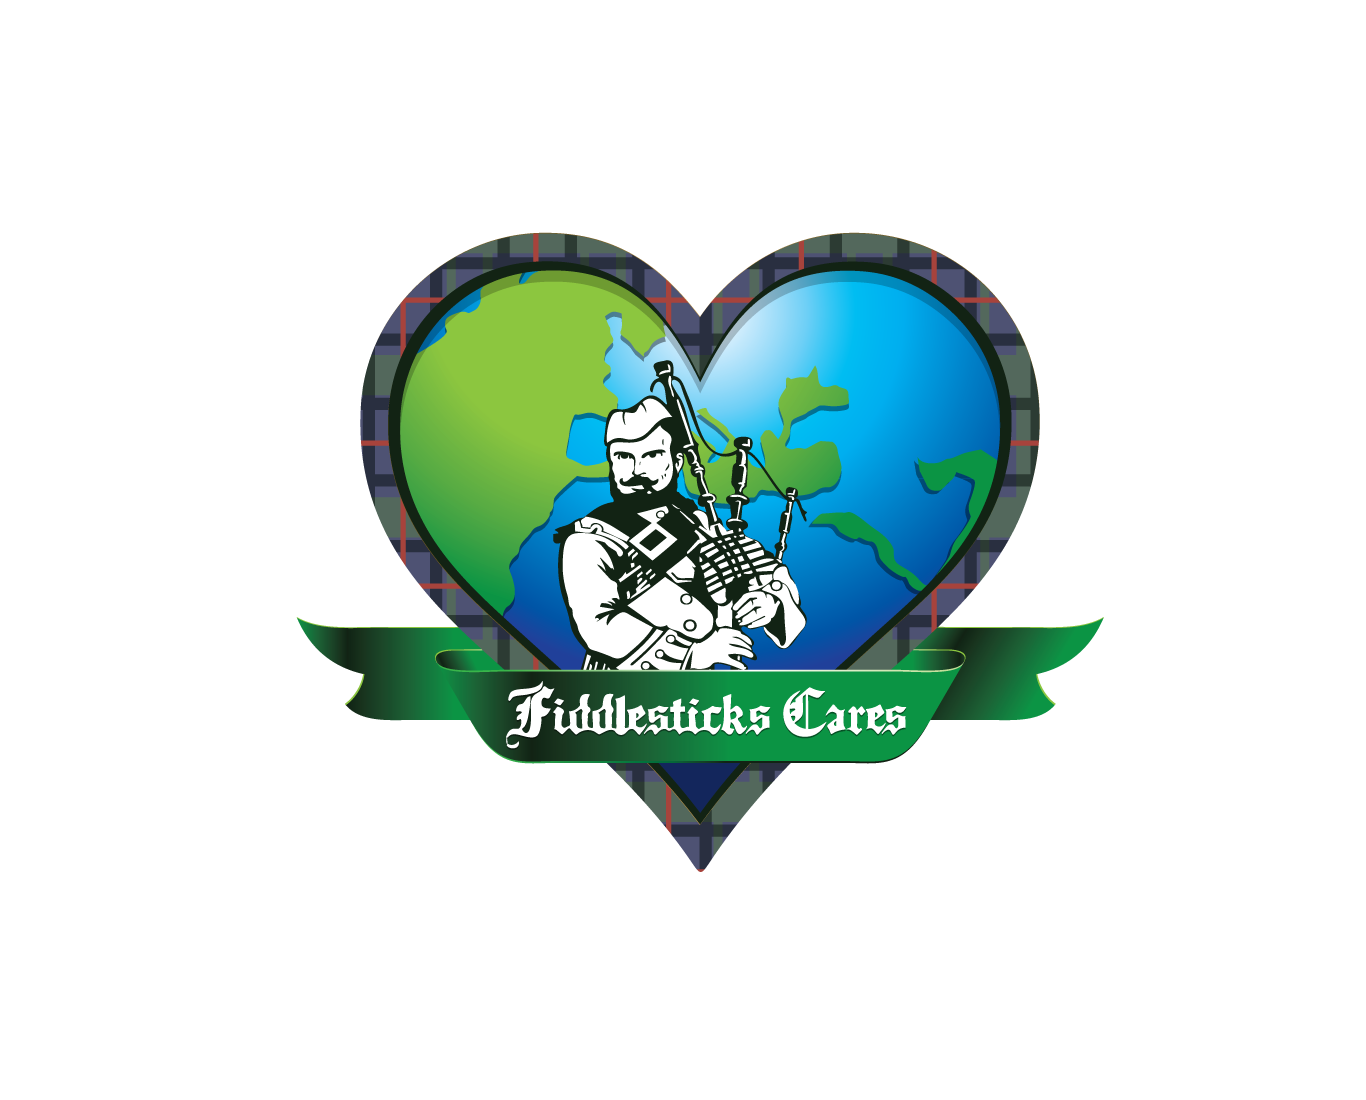 [RESTRICTED PROJECT] Only for ANIJAMS Fiddlesticks Cares - Fund Raising